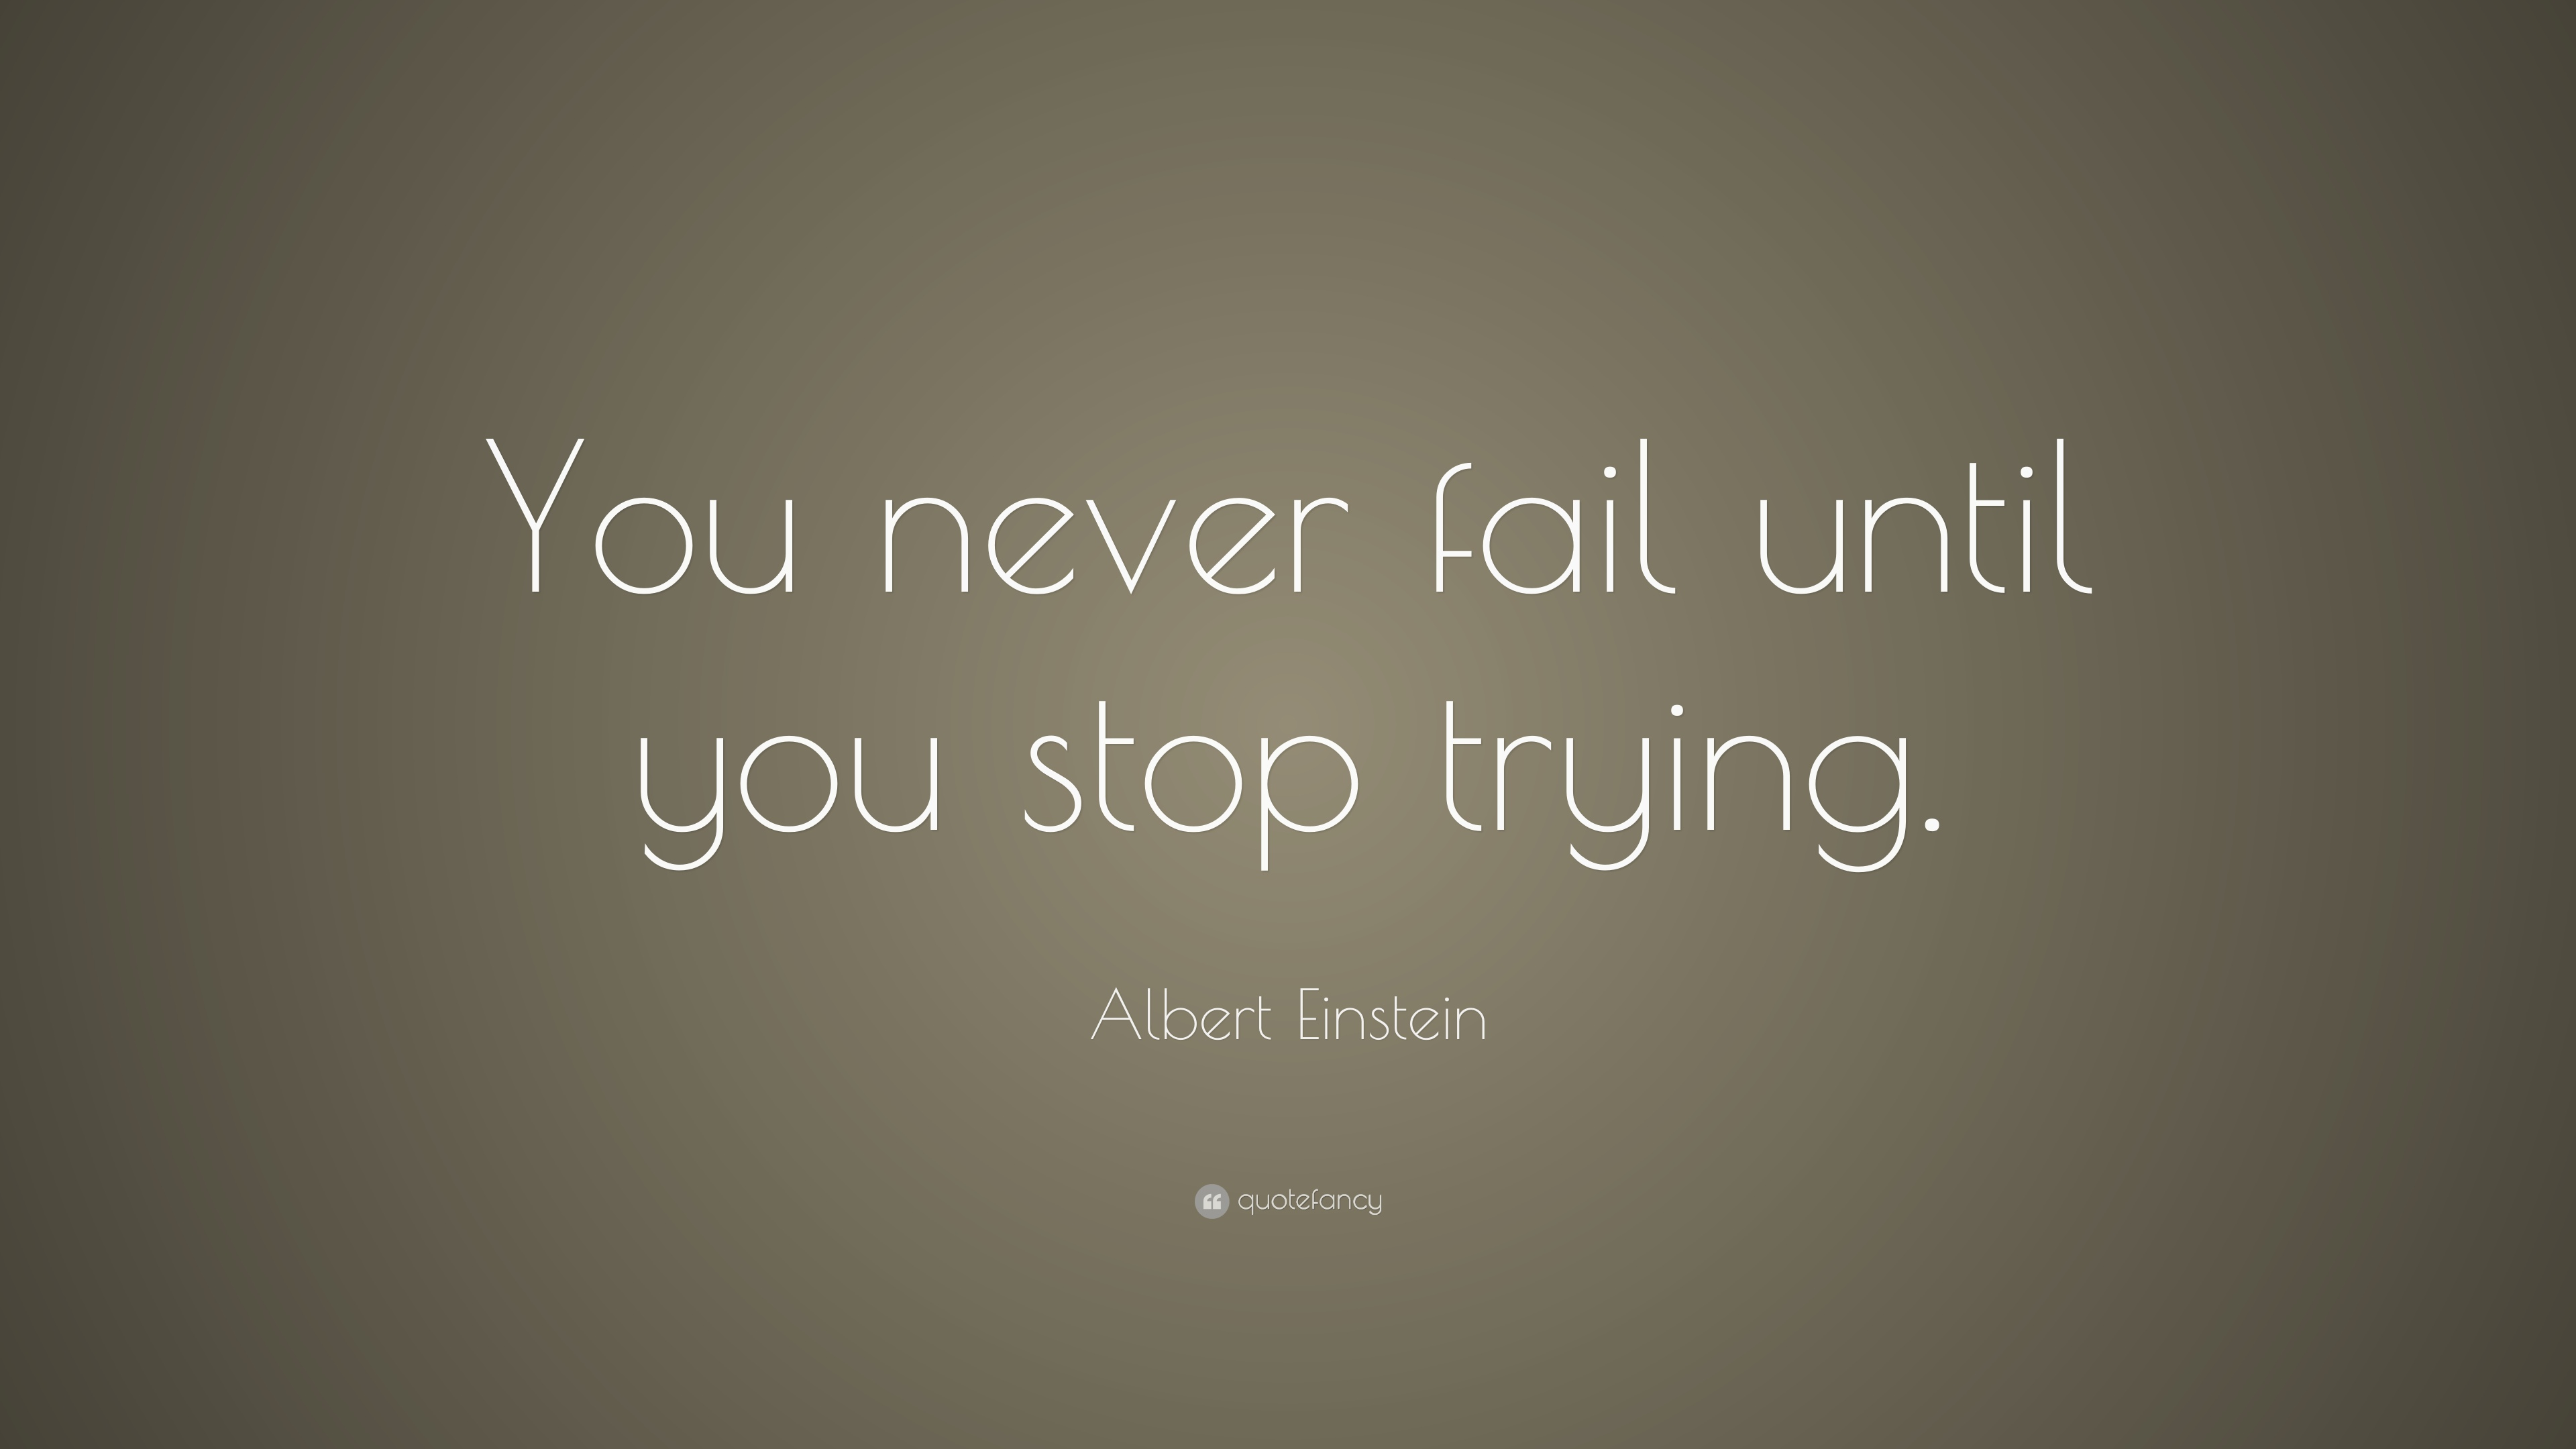 Persistence Quotes Wallpapers Albert Einstein Quote You Never Fail Until You Stop